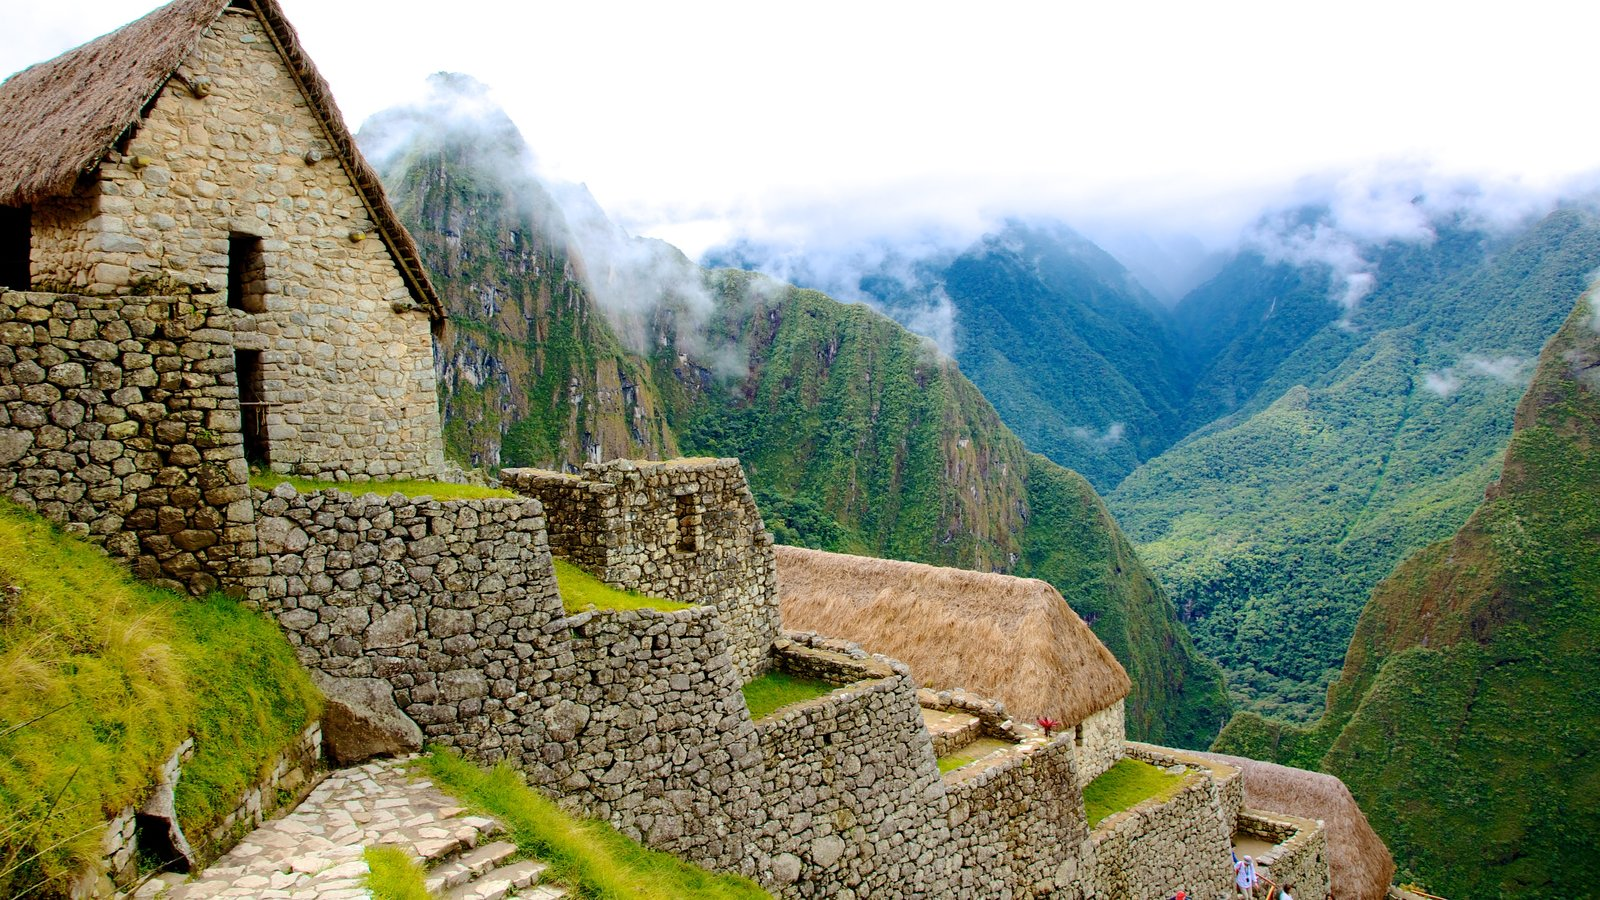 Cusco which includes heritage architecture, building ruins and a house